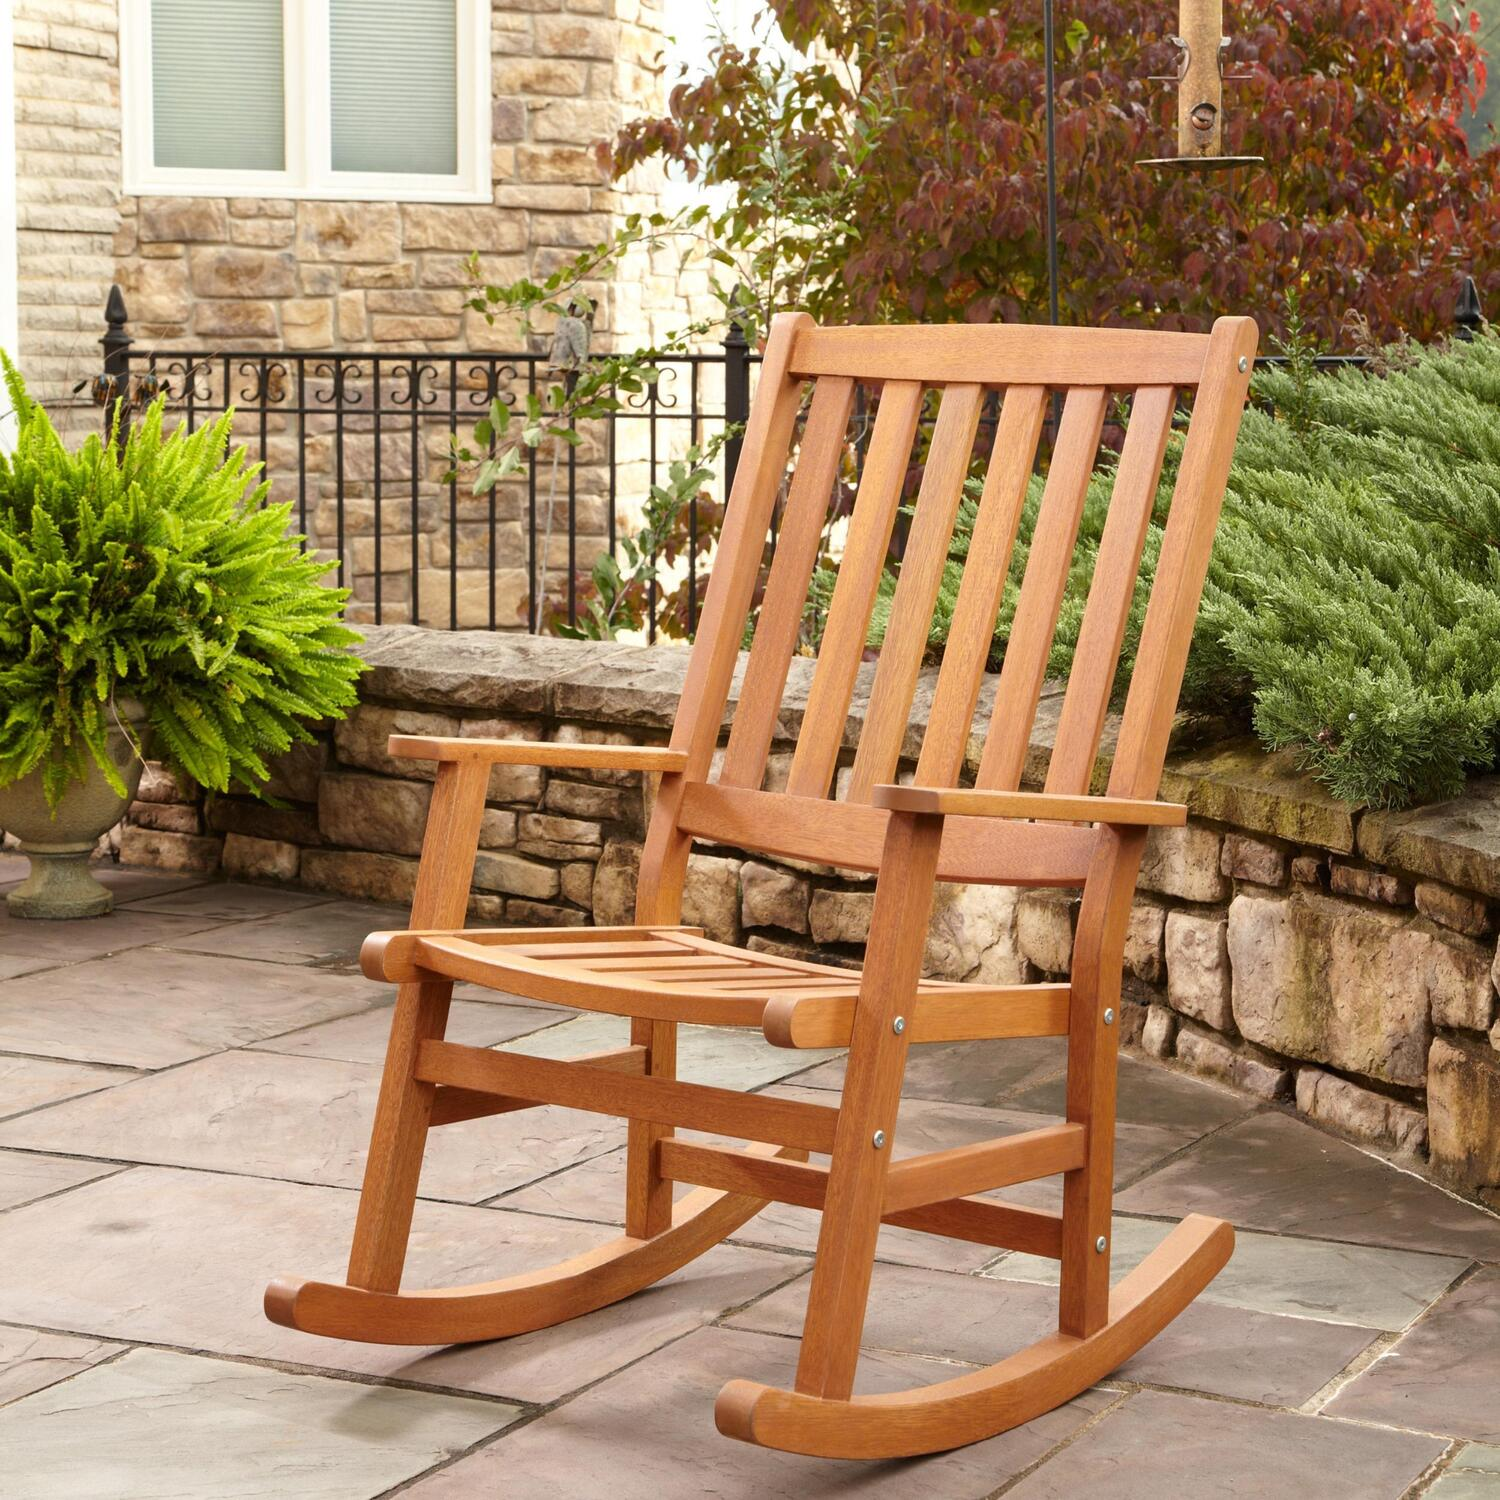 Home Styles Bali Hai Outdoor Rocking Chair by OJ merce $117 02 $243 99